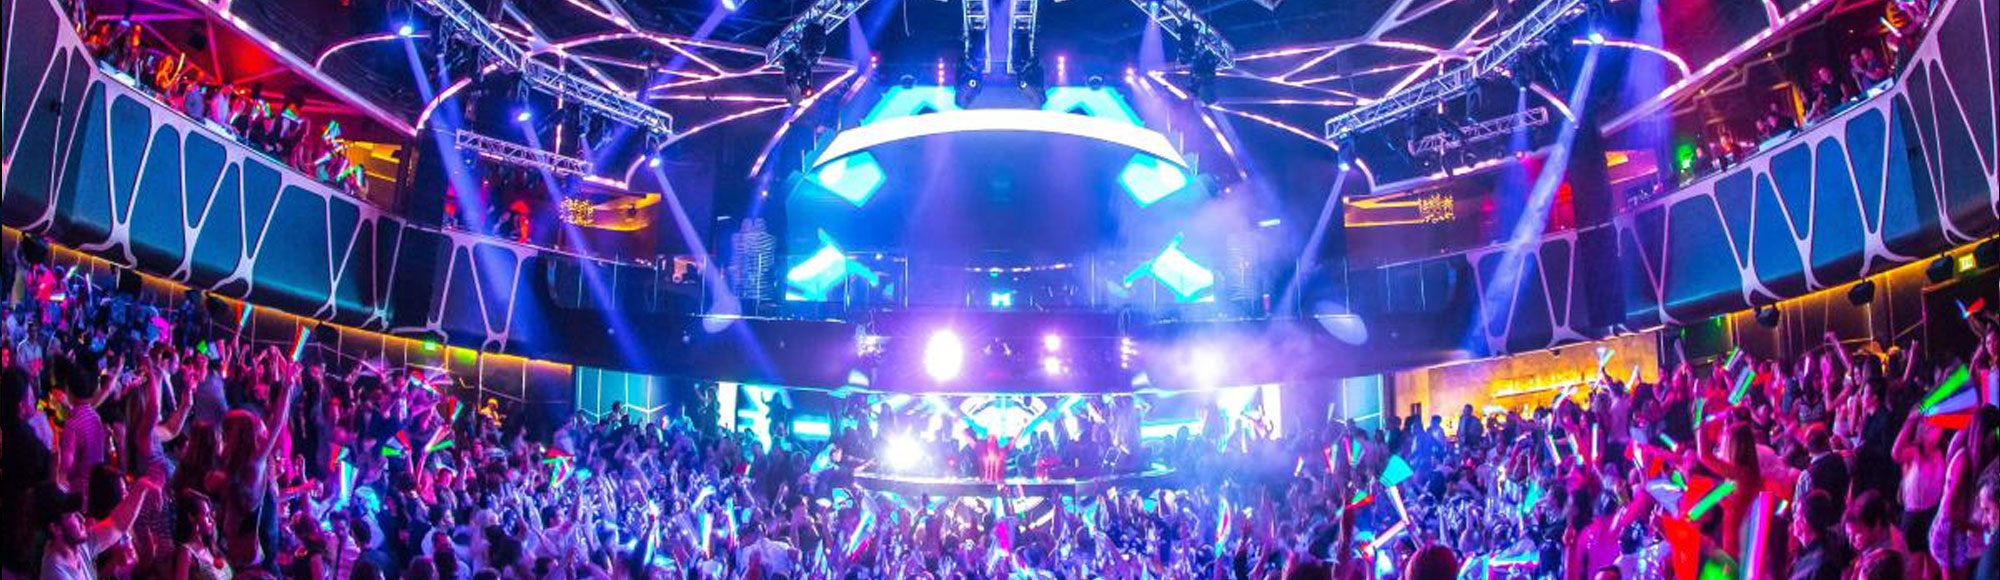 Hakkasan - Showtimes, Deals, & Reviews | Vegas com